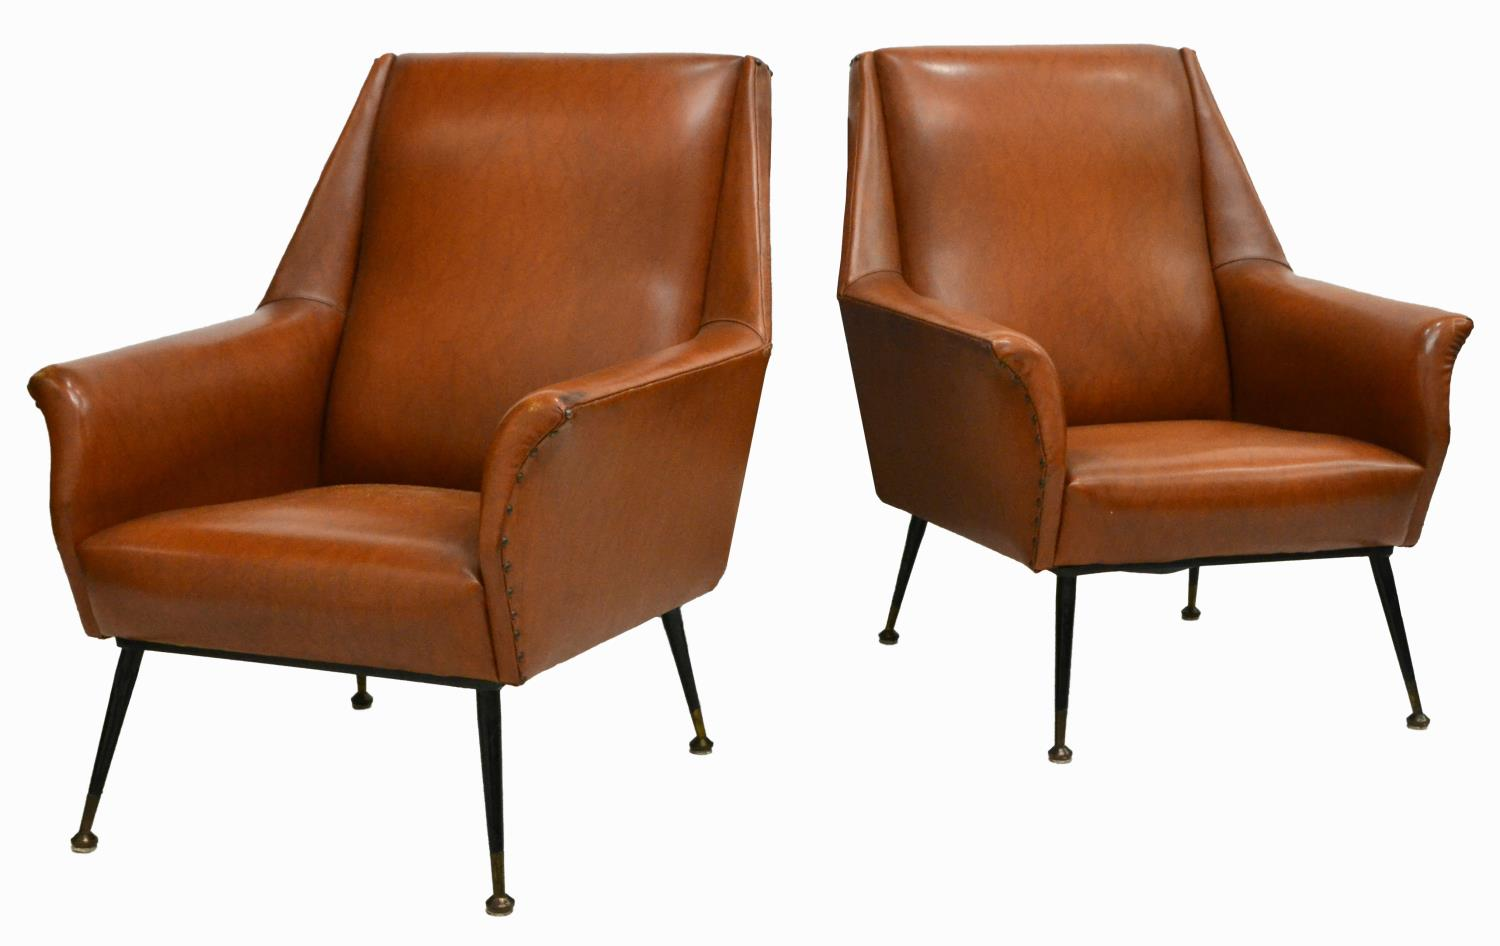 Italian Mid Century Upholstered Arm Chairs 1950s